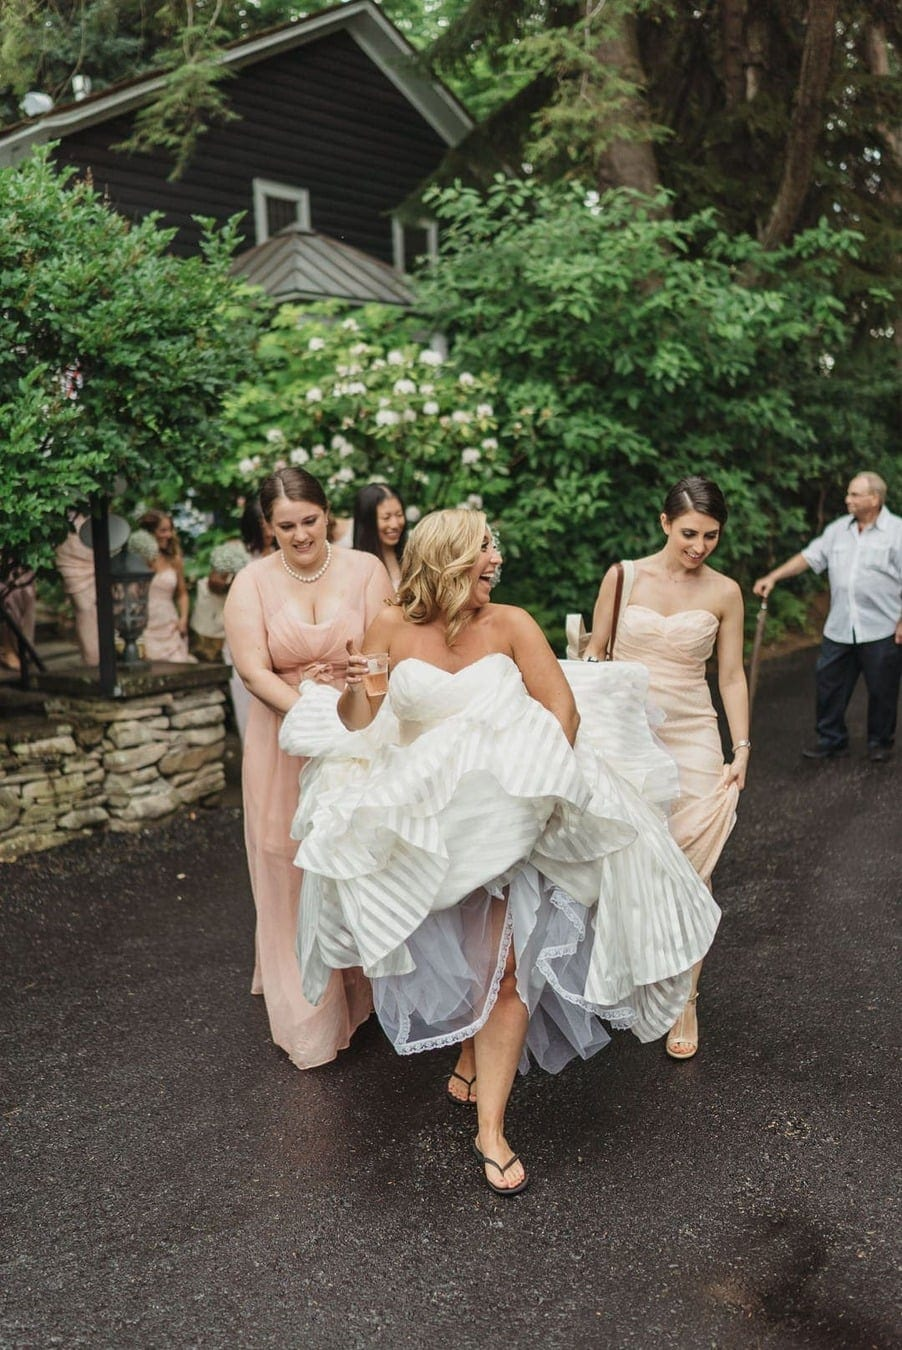 Bride smiles as she and bridesmaids lift up her wedding dress dress